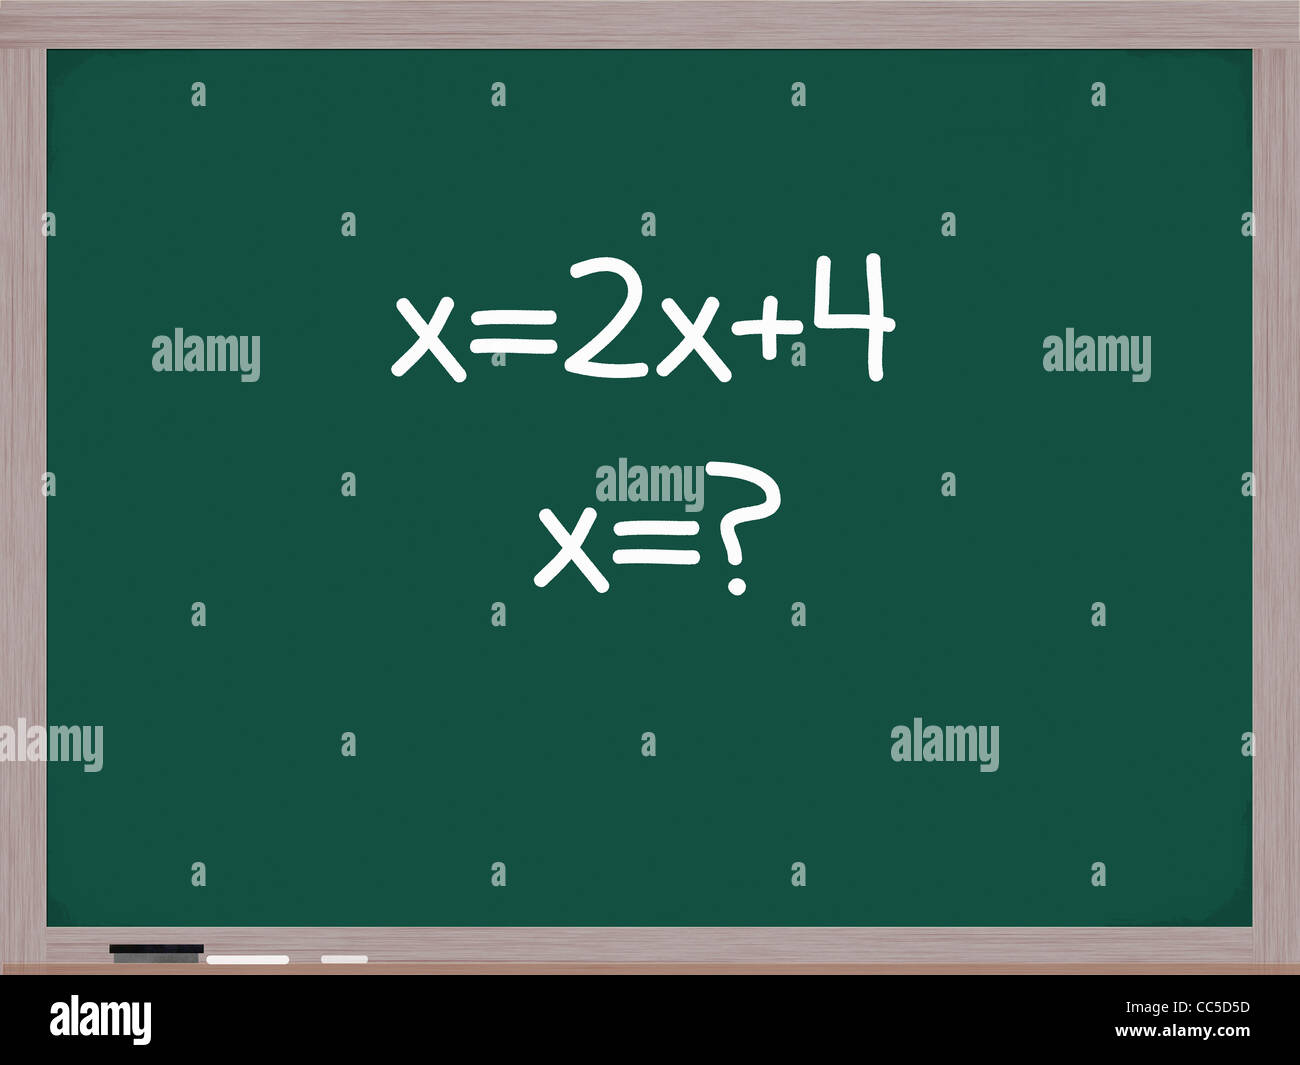 Algebra Equation On A Chalk Board Trying To Solve The Mathematical Problem  For X